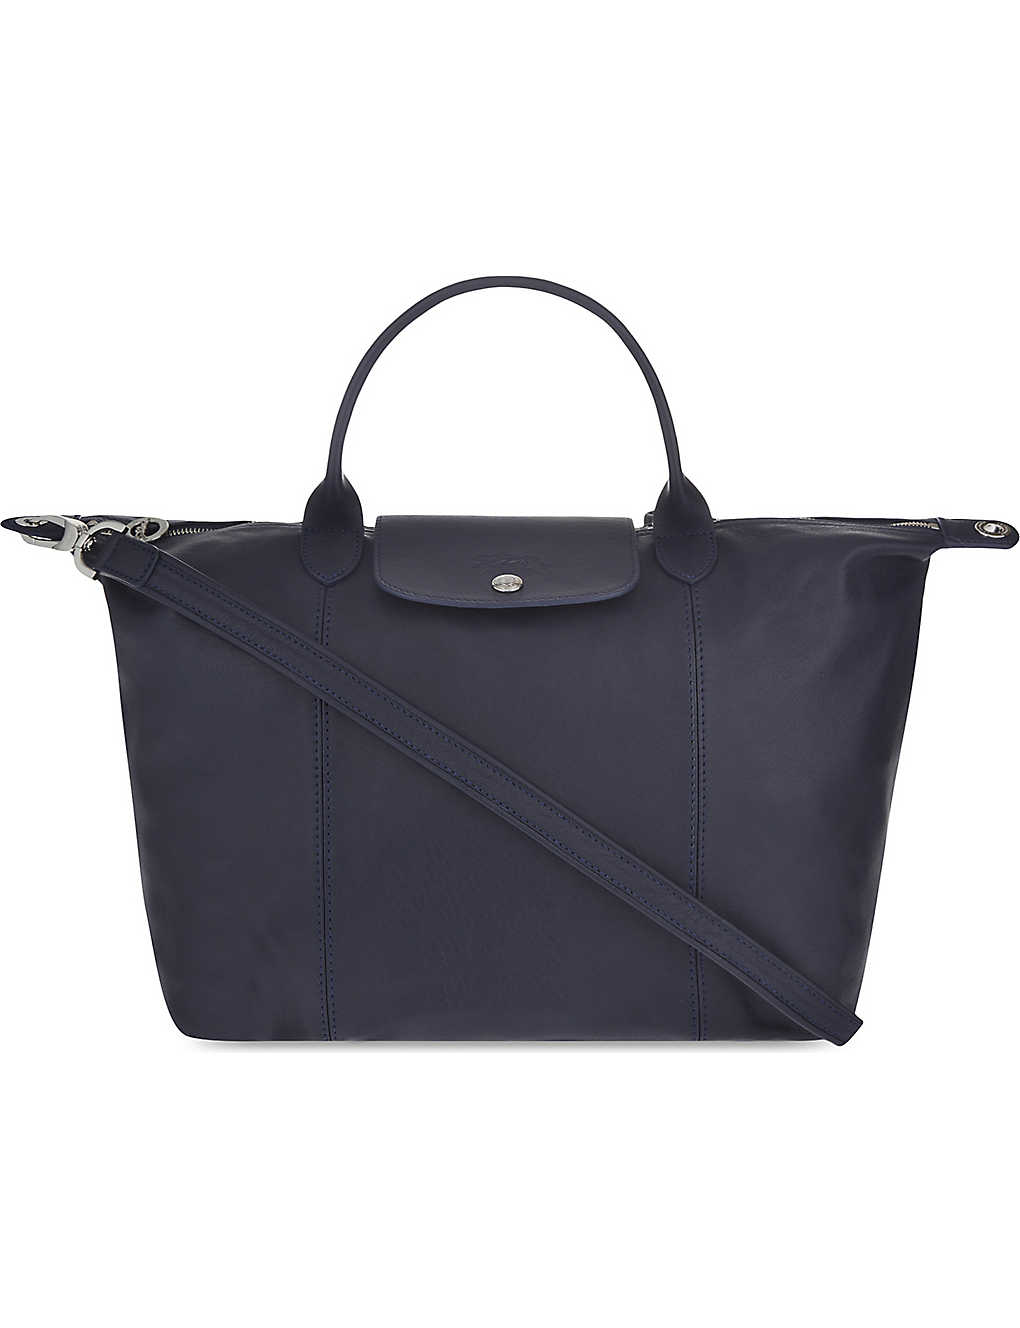 d053731ecc LONGCHAMP - Le Pliage Cuir medium leather shopper | Selfridges.com